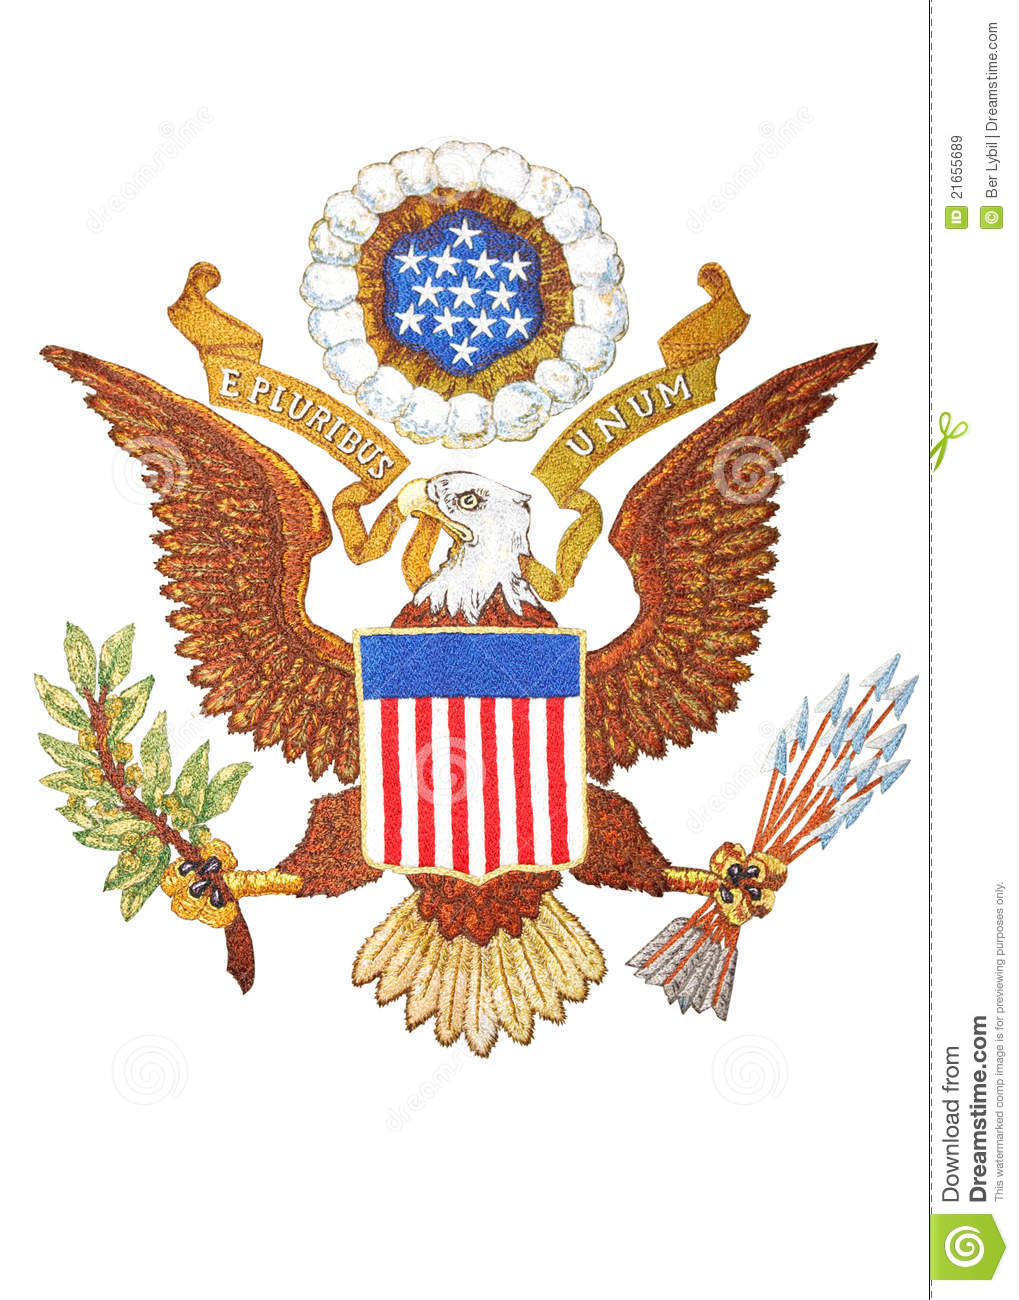 Coat of arms of United States of America